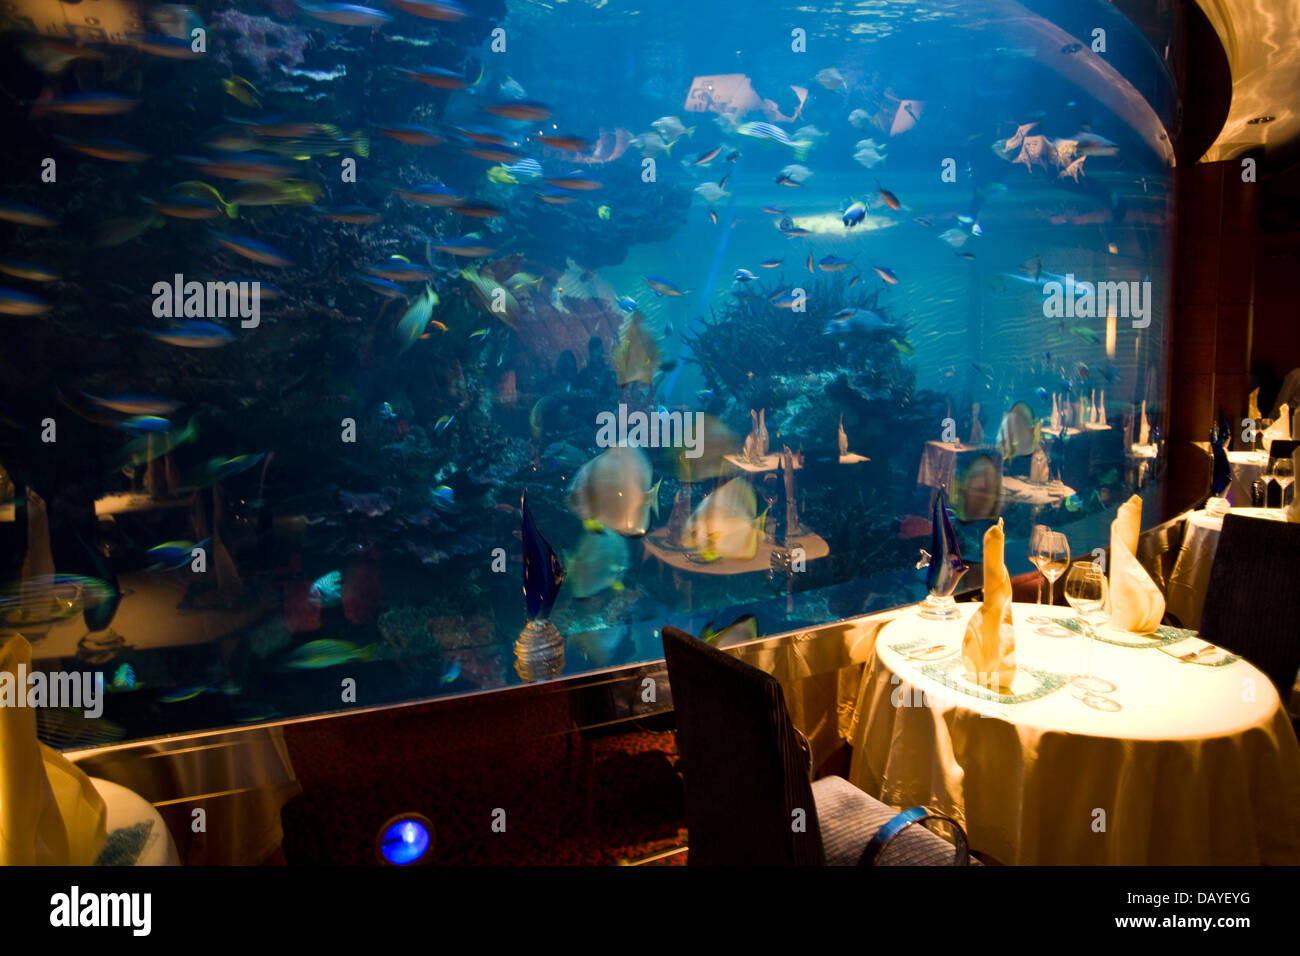 the al mahara aquarium restaurant burj alarab hotel